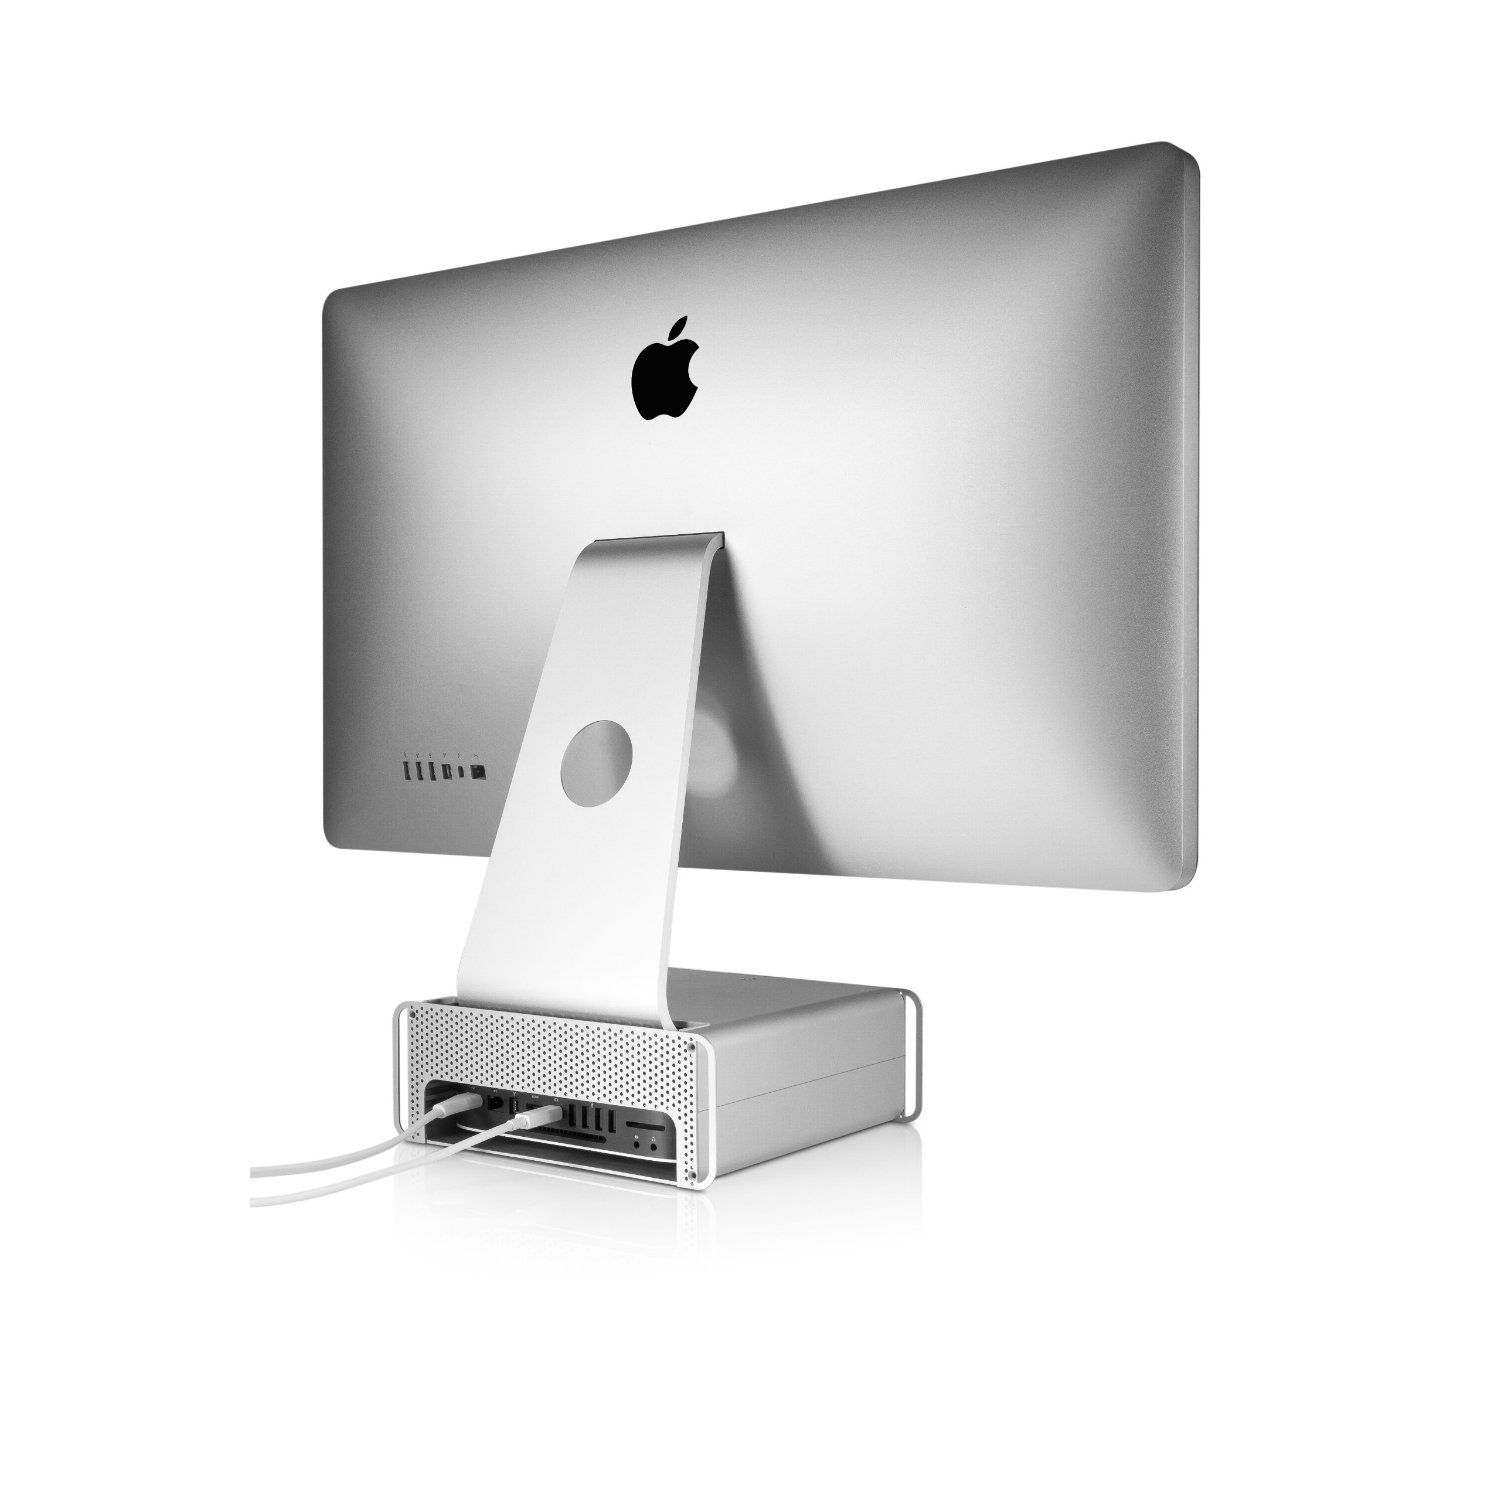 Twelve South Hirise For Imac Adjustable Stand For Imac And Apple Displays Macbook Accessories Apple Apple Accessories